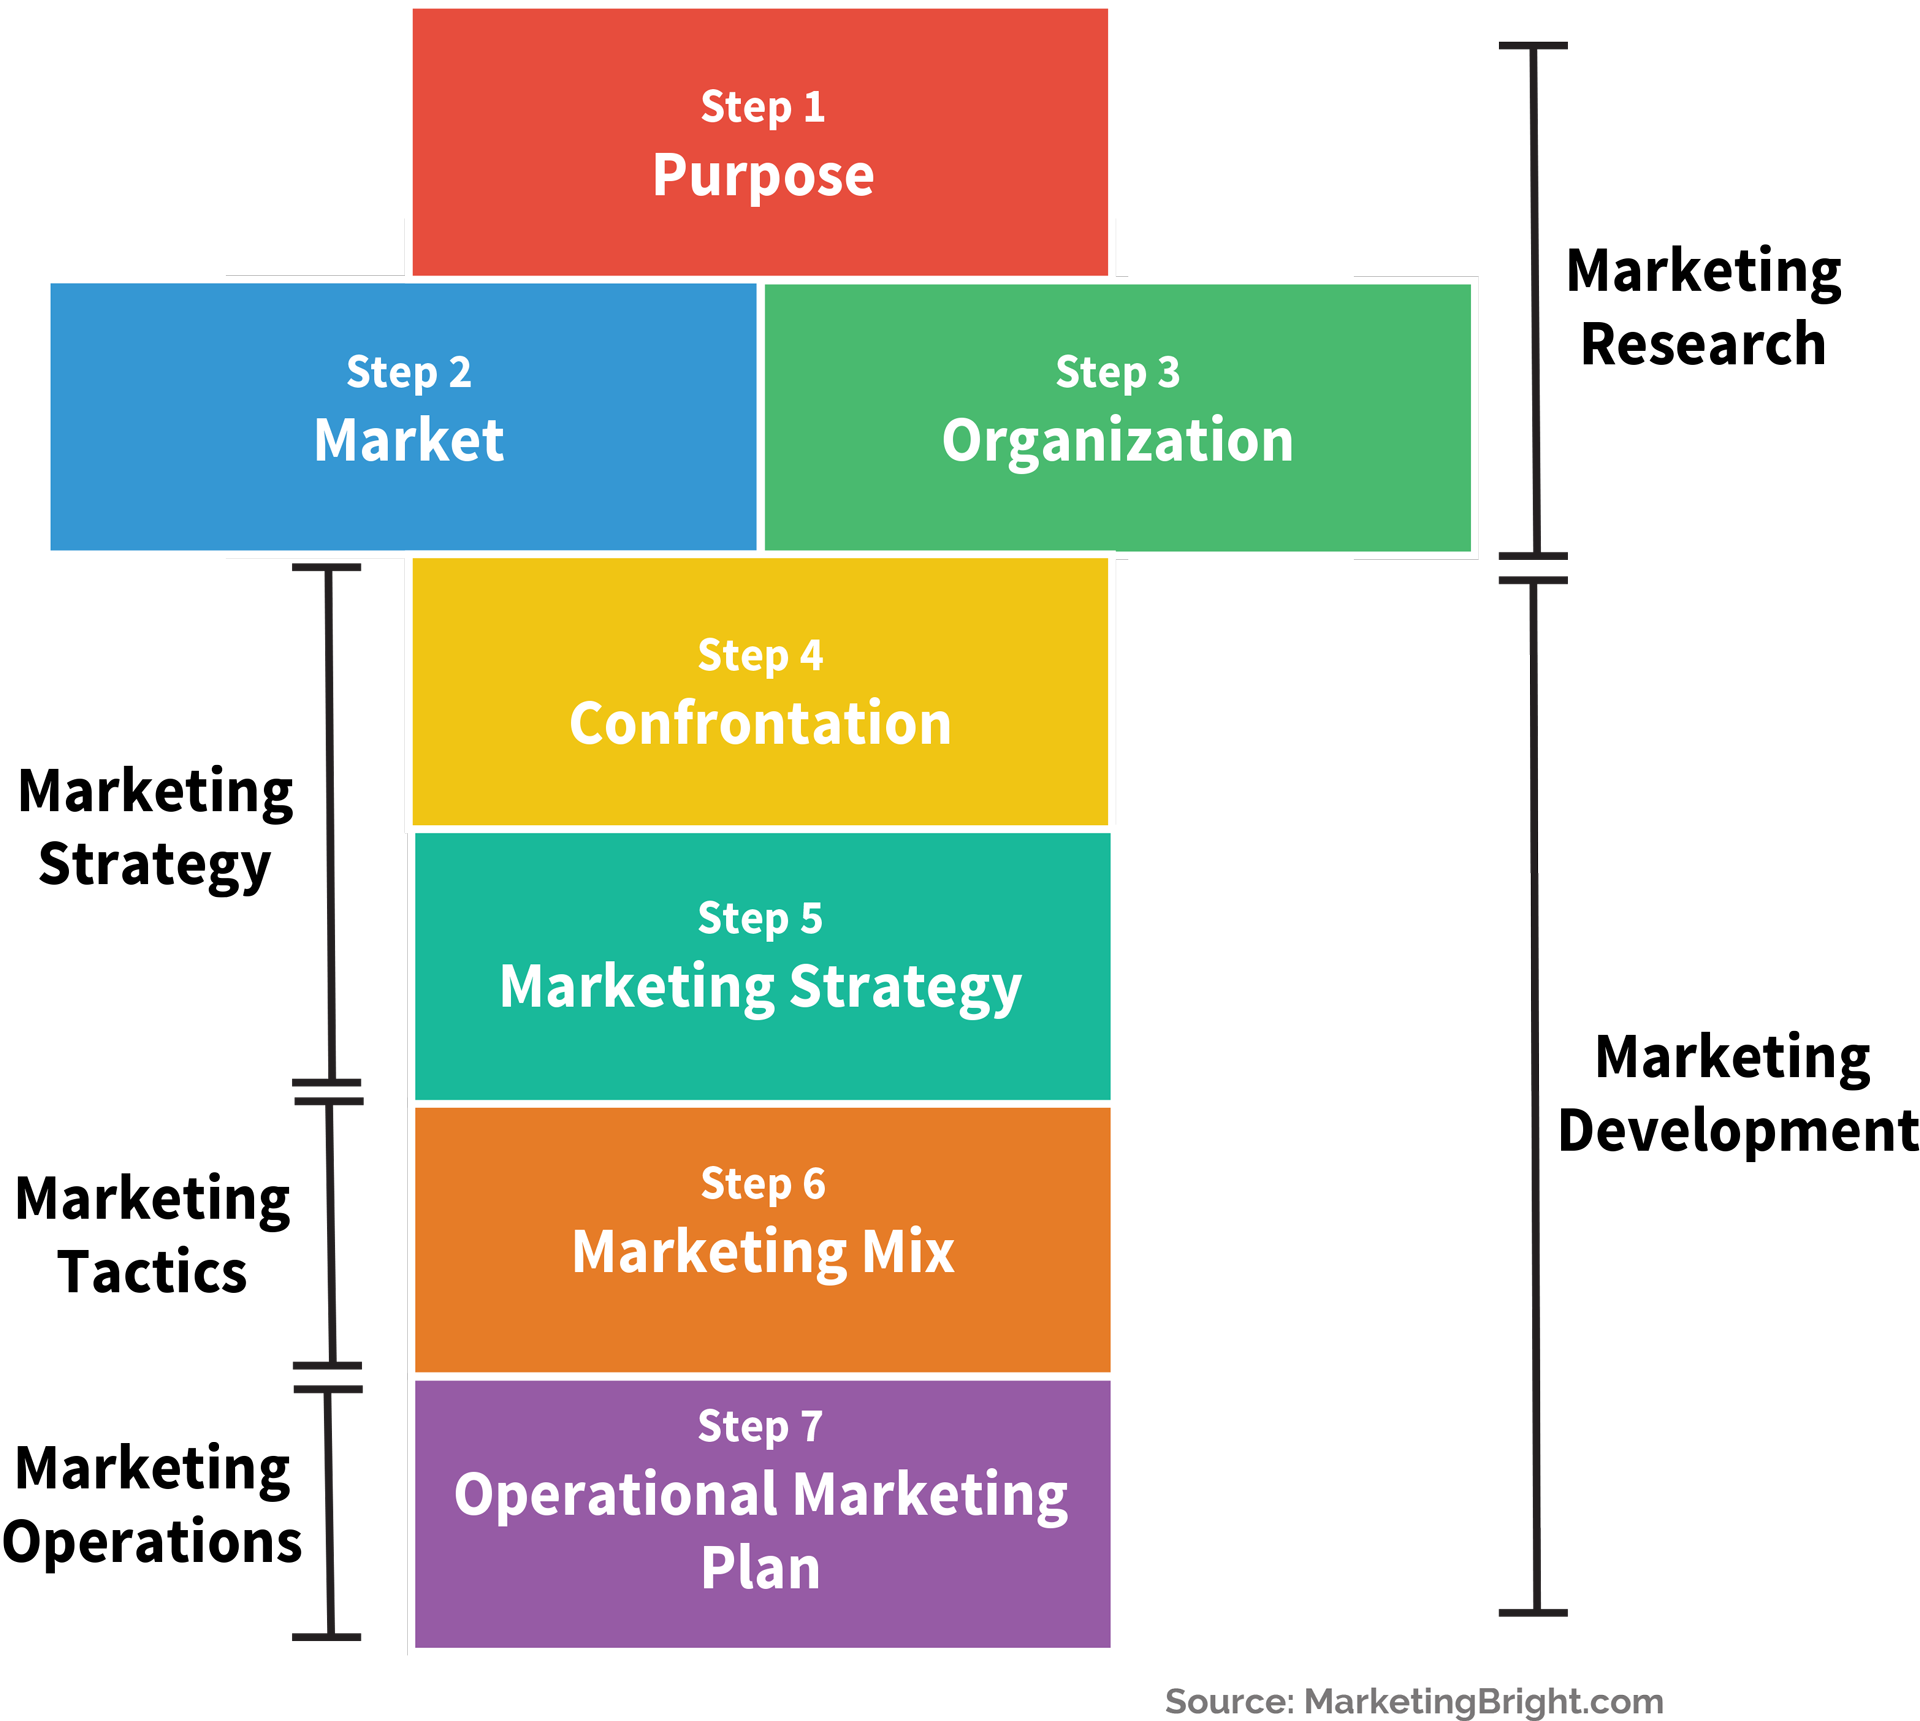 Pricing Strategy Marketingn Photos Hd Your In Steps Swot